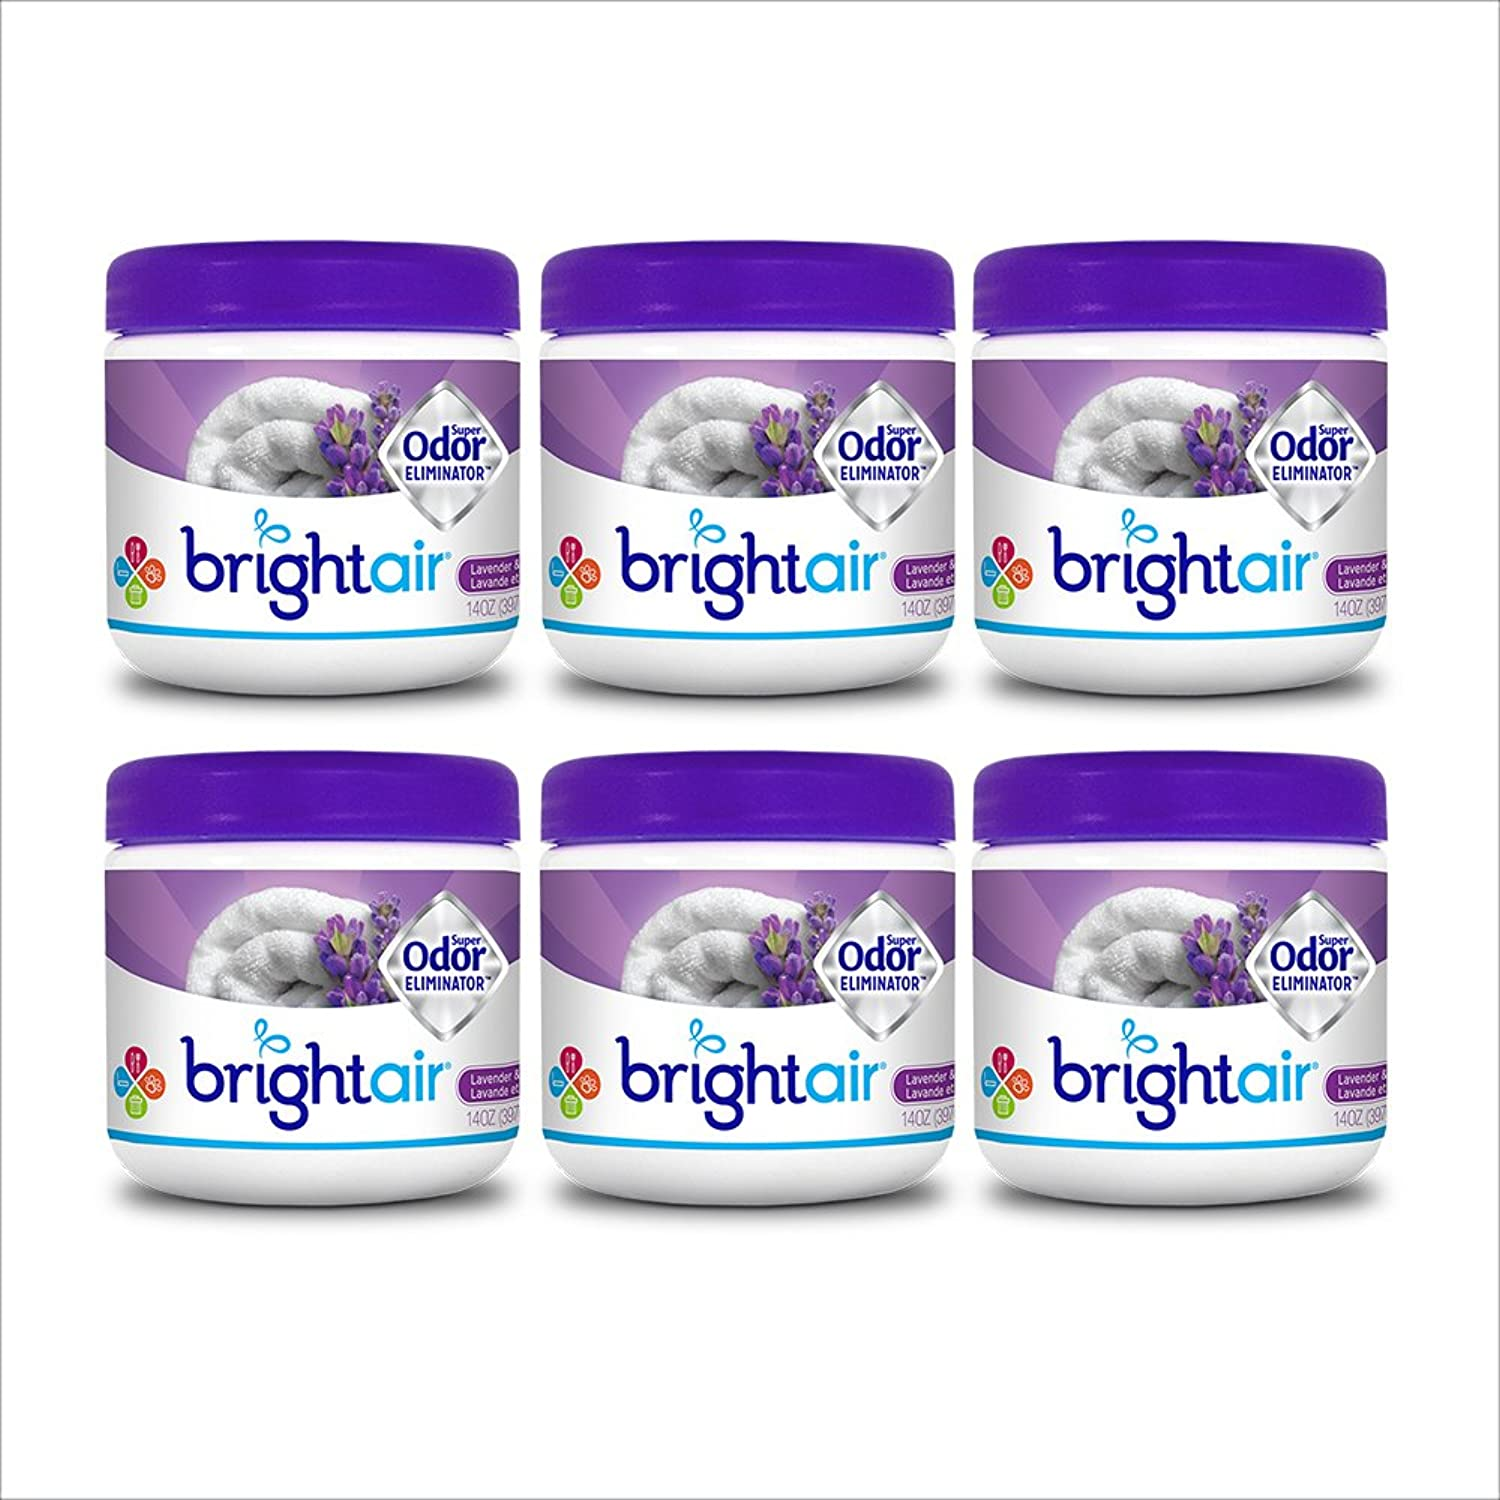 Bright Air Solid Air Freshener and Odor Eliminator, Lavender and Fresh Linen Scent, 14 Ounces, 6 Pack